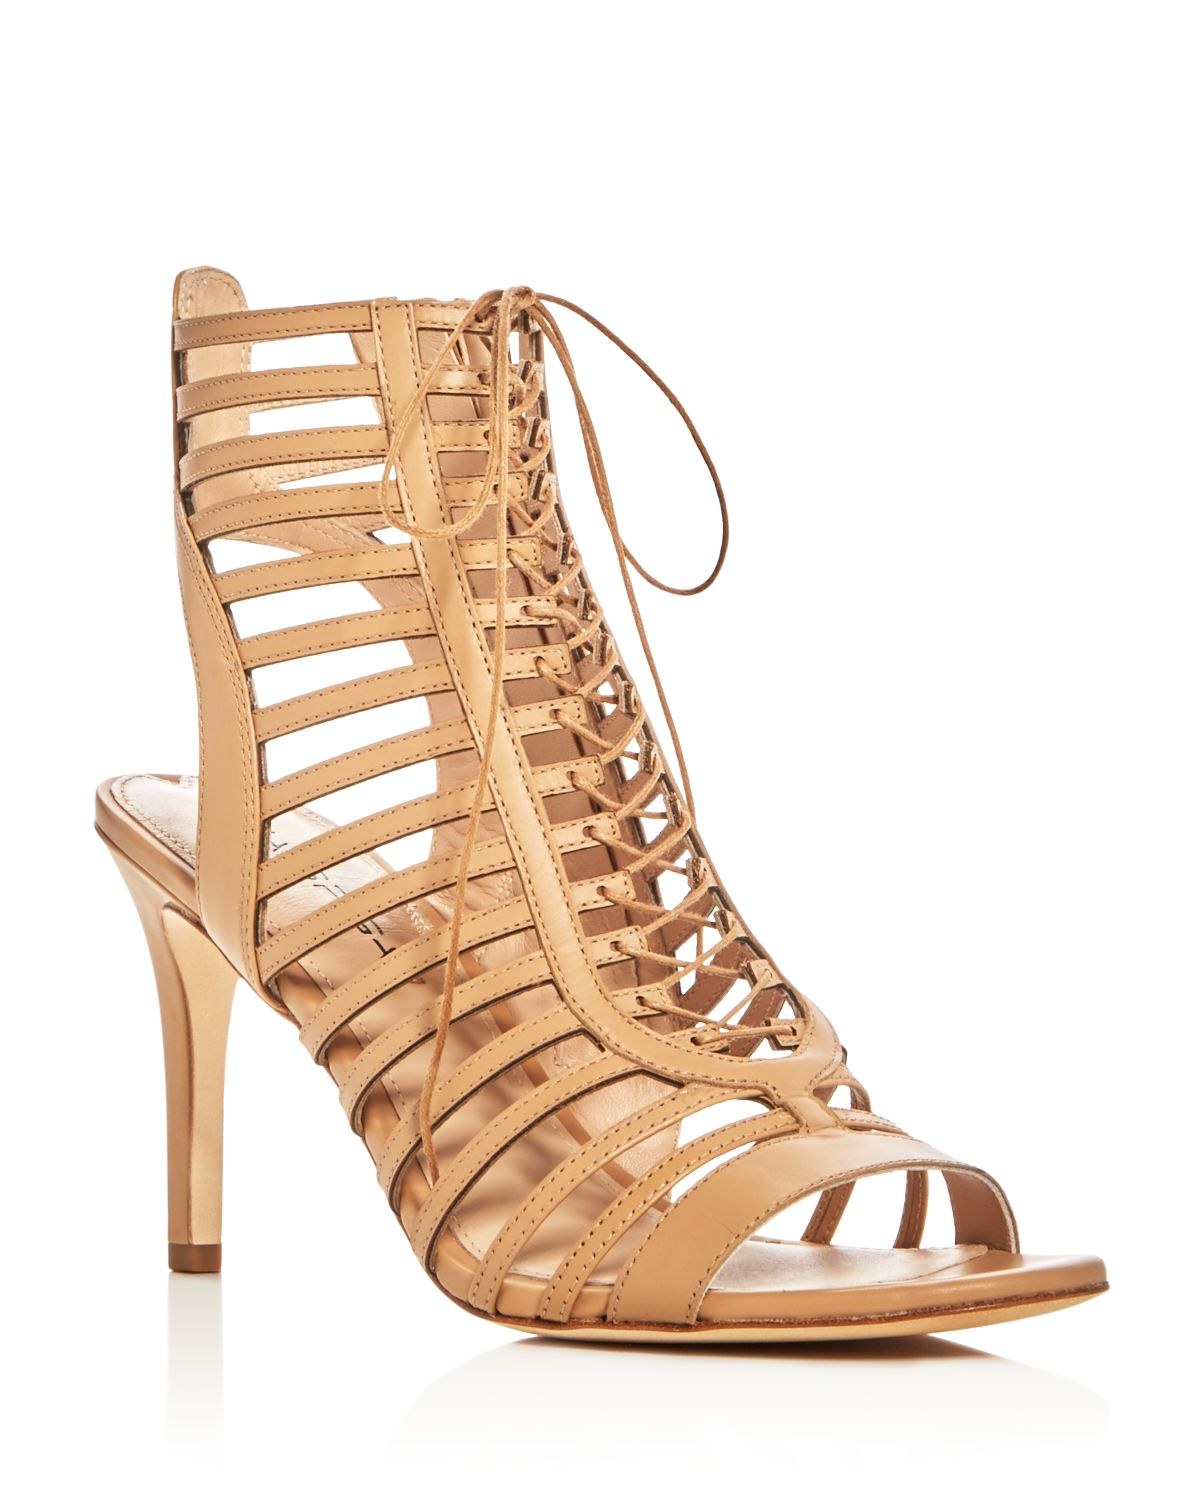 Via Spiga Valena Caged Lace Up Sandals